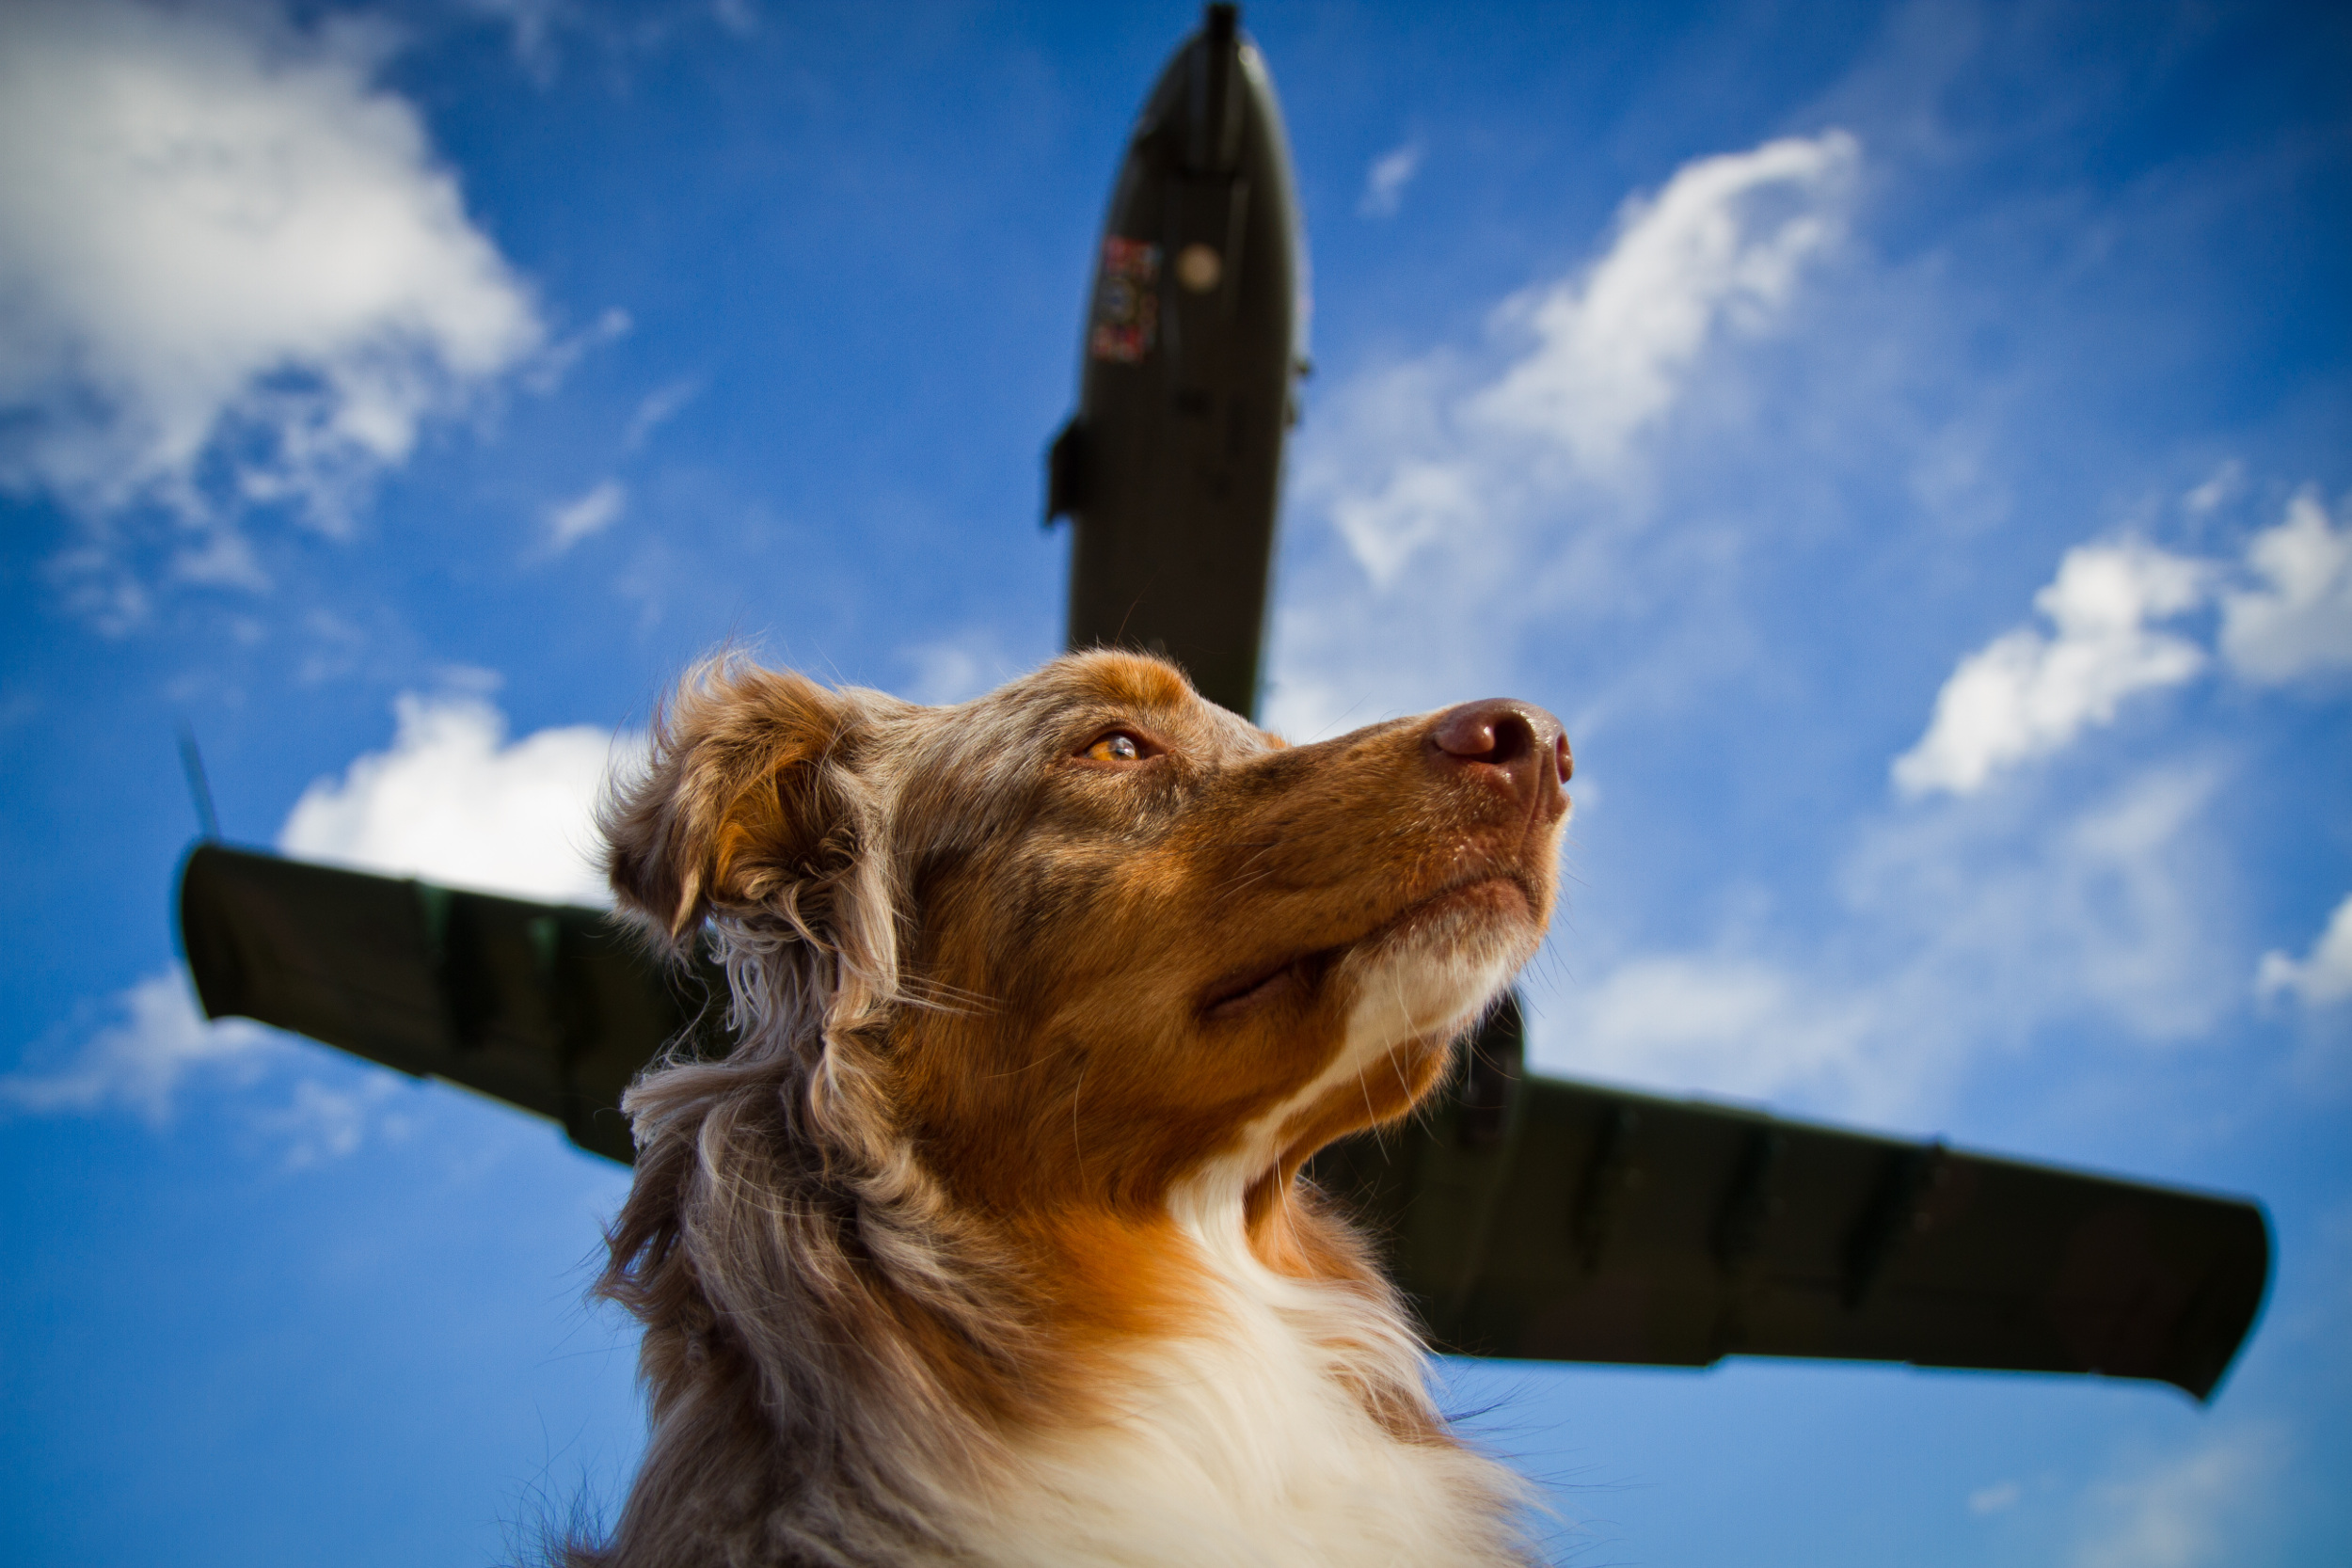 Dog with Plane